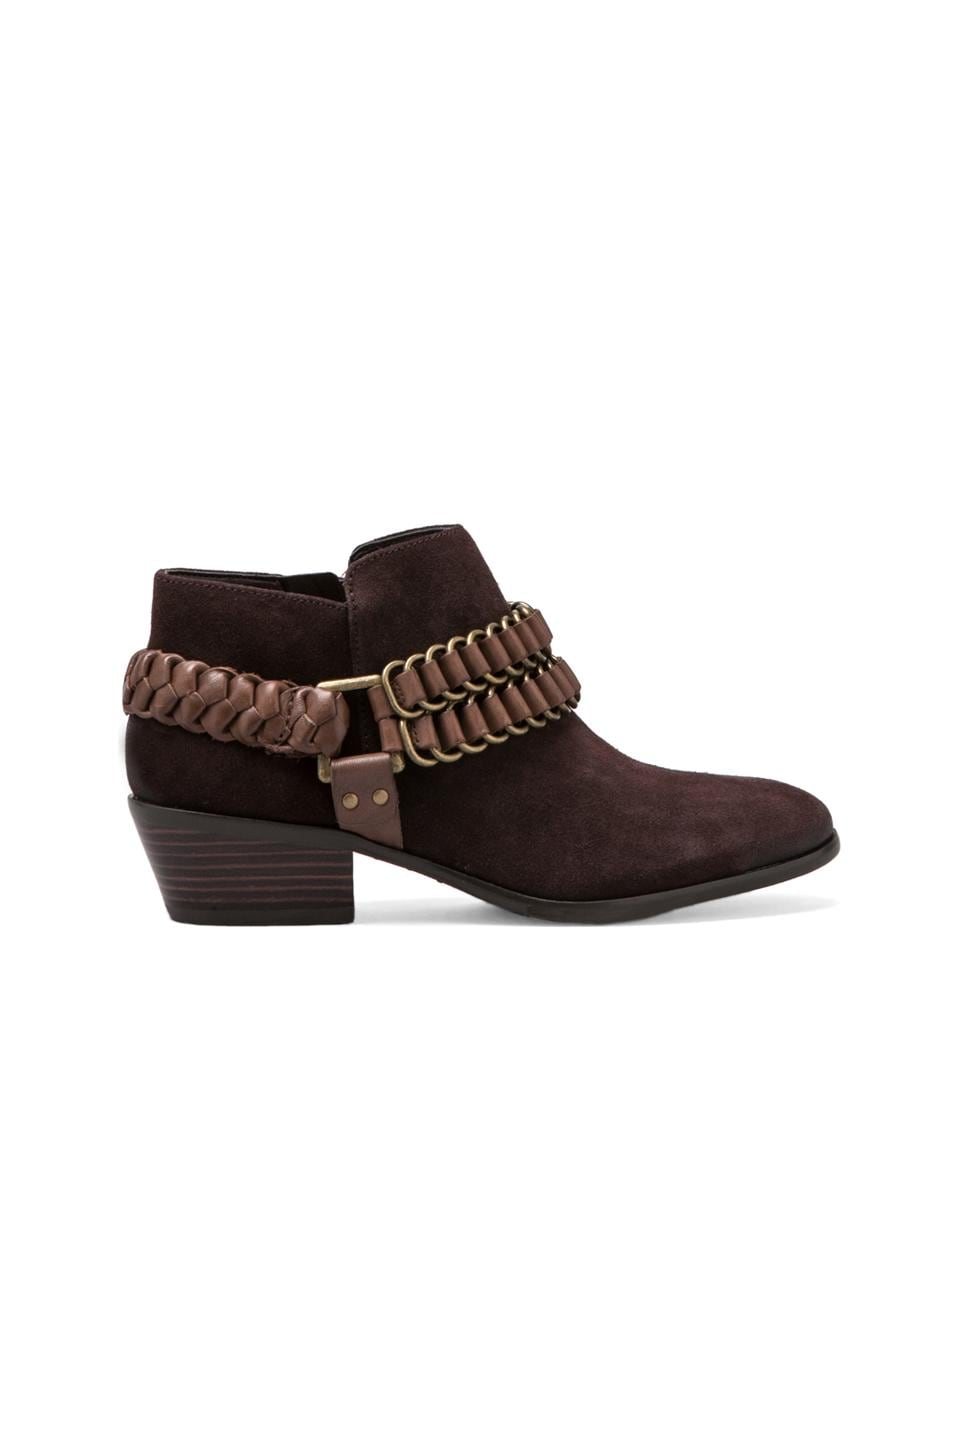 Sam Edelman Posey Bootie in Espresso Bean/Teak Brown